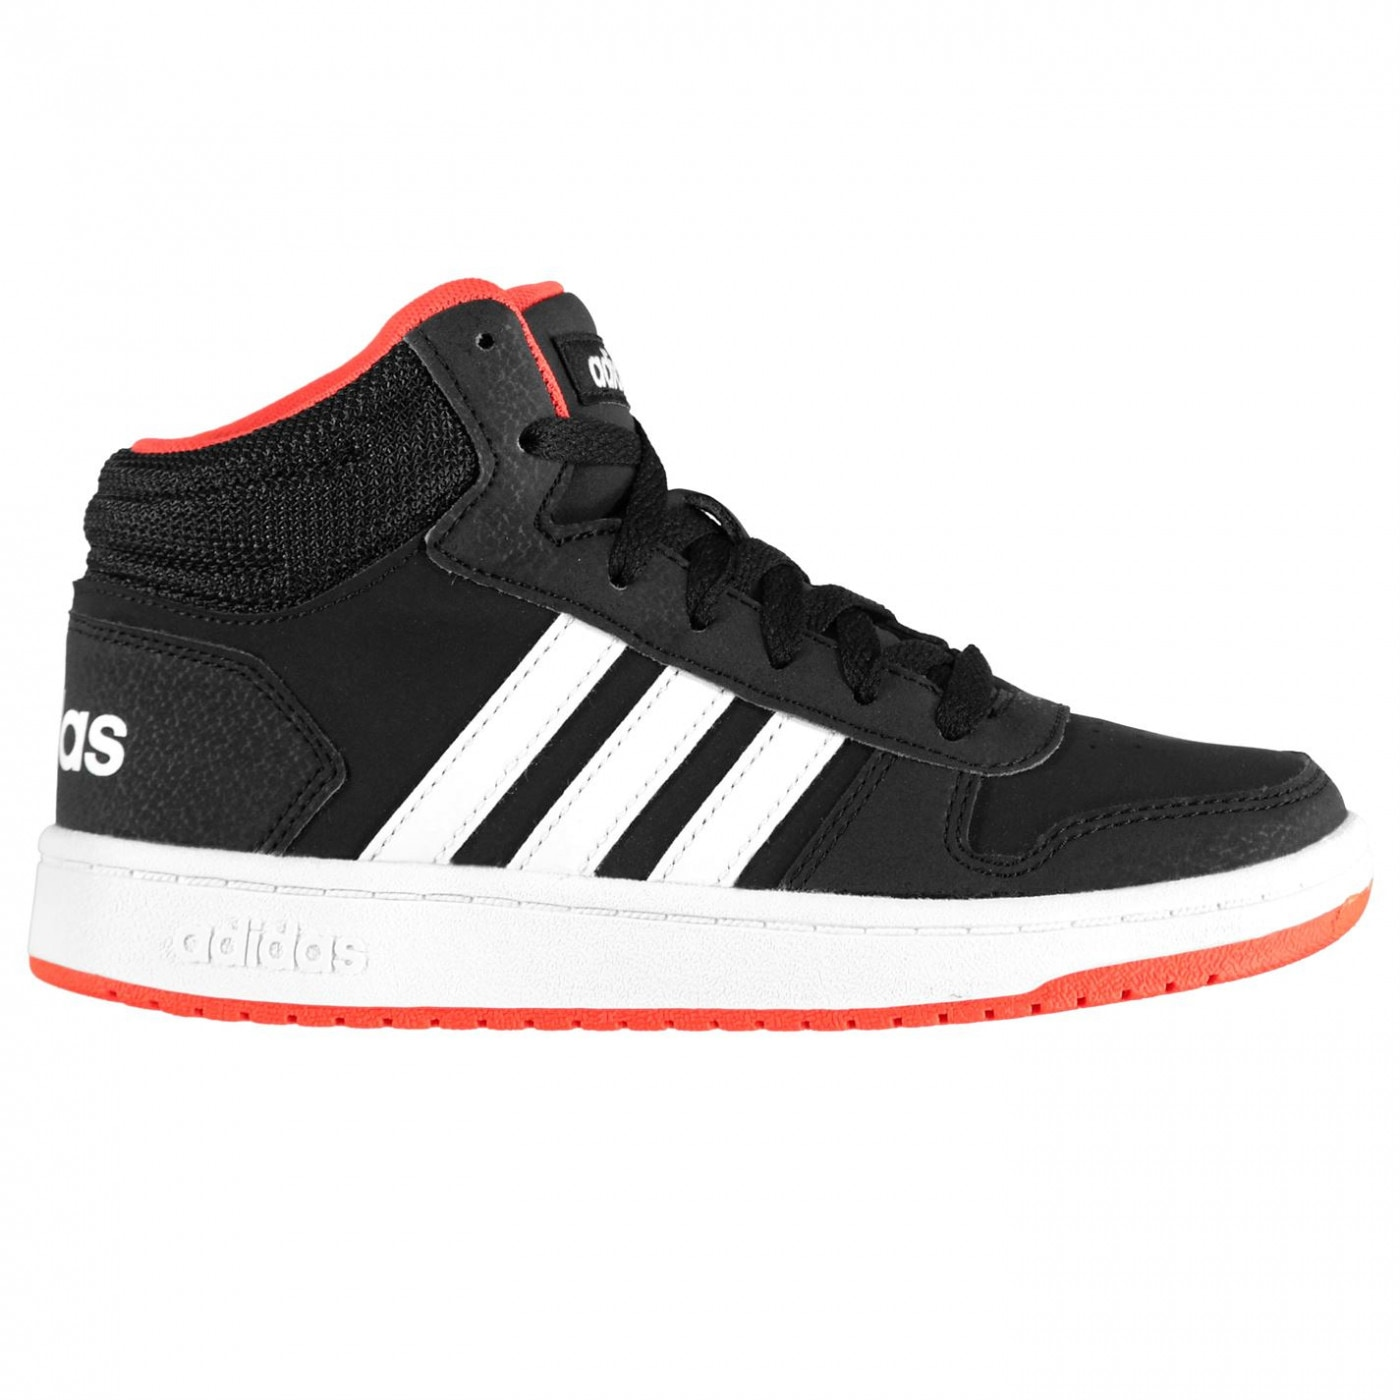 Adidas Hoops Mid 2.0 Trainers Child Boys